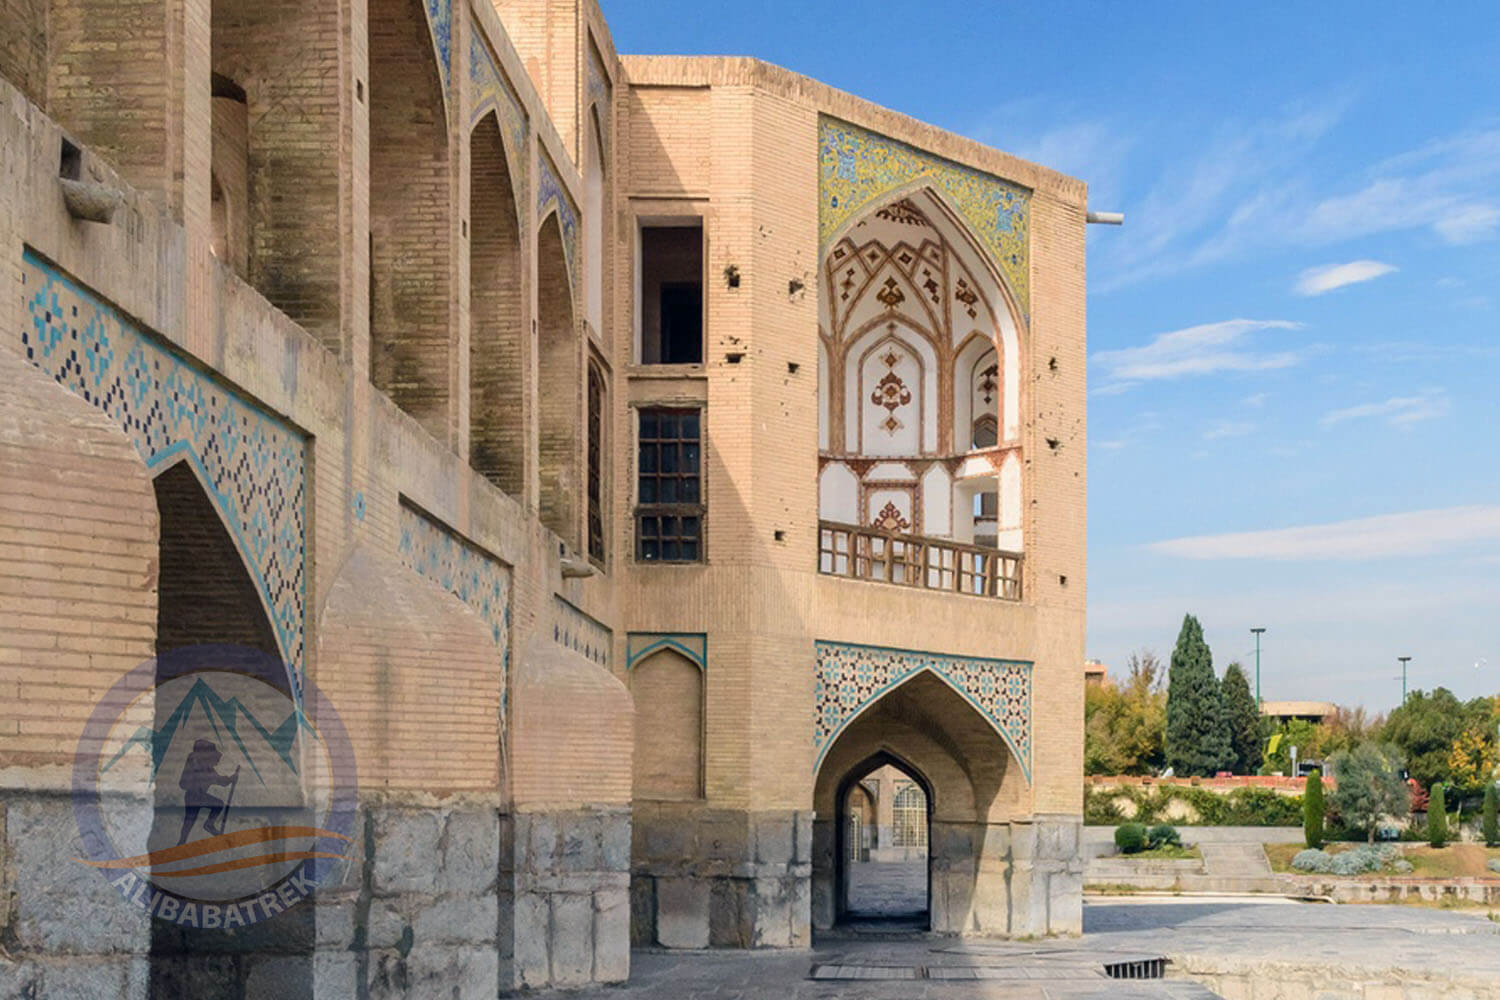 Alibabatrek iran tour packages Tour in iran Persia tour Iran cultural tour Khaju Bridge2